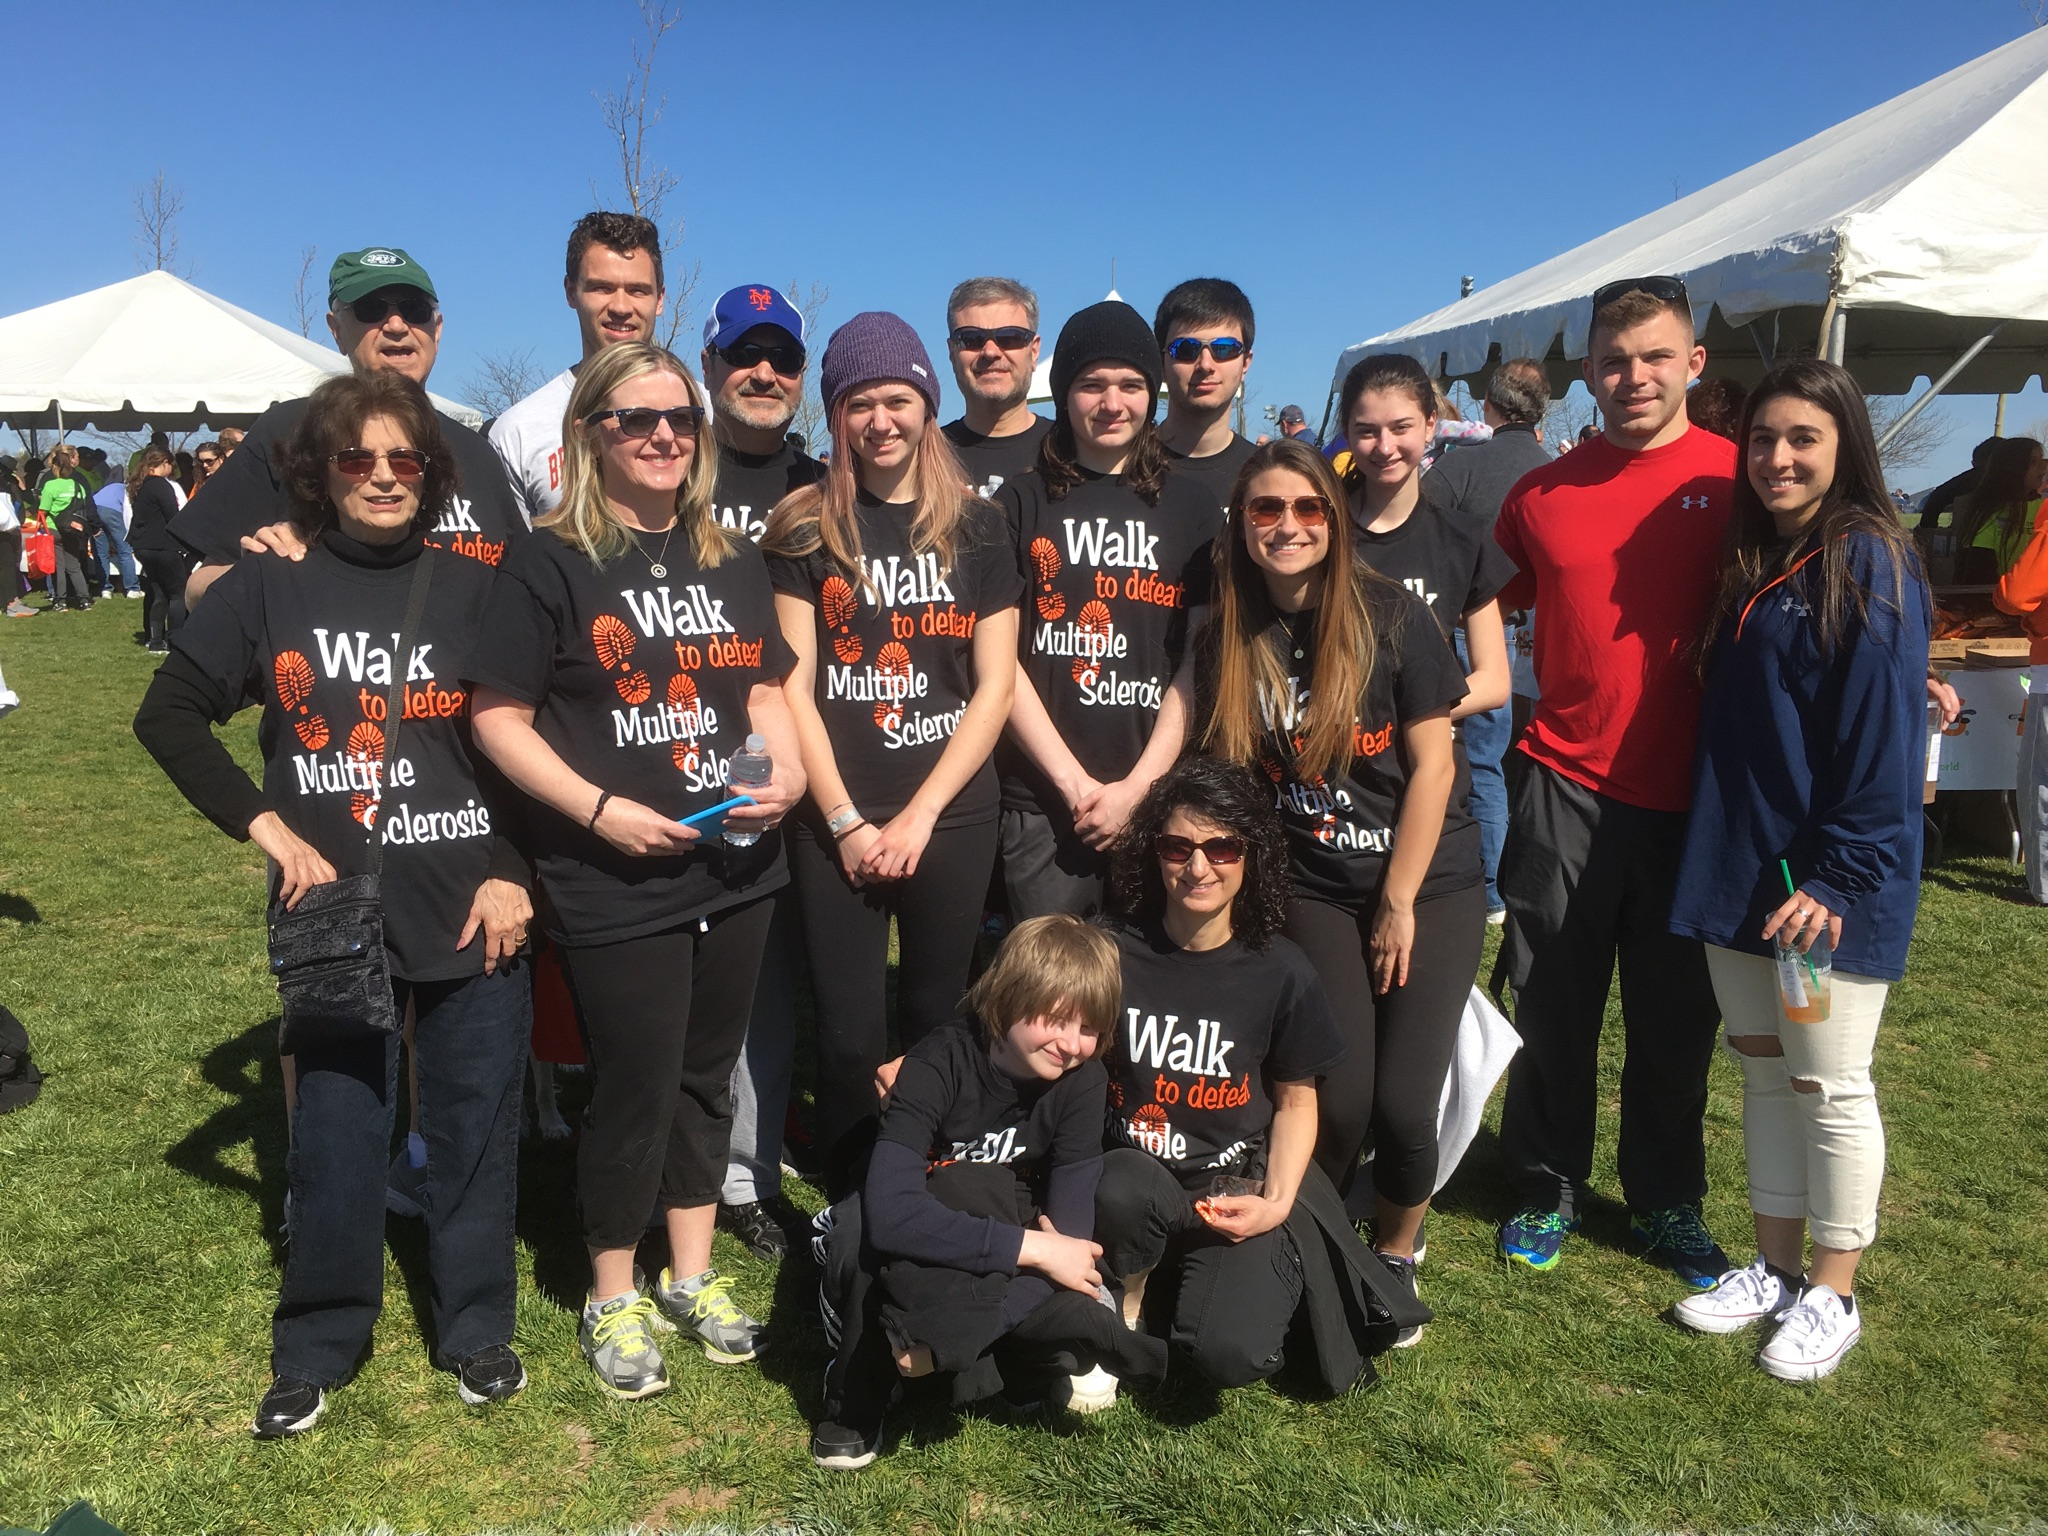 Custom T Shirts For Family Support Of Ms Shirt Design Ideas